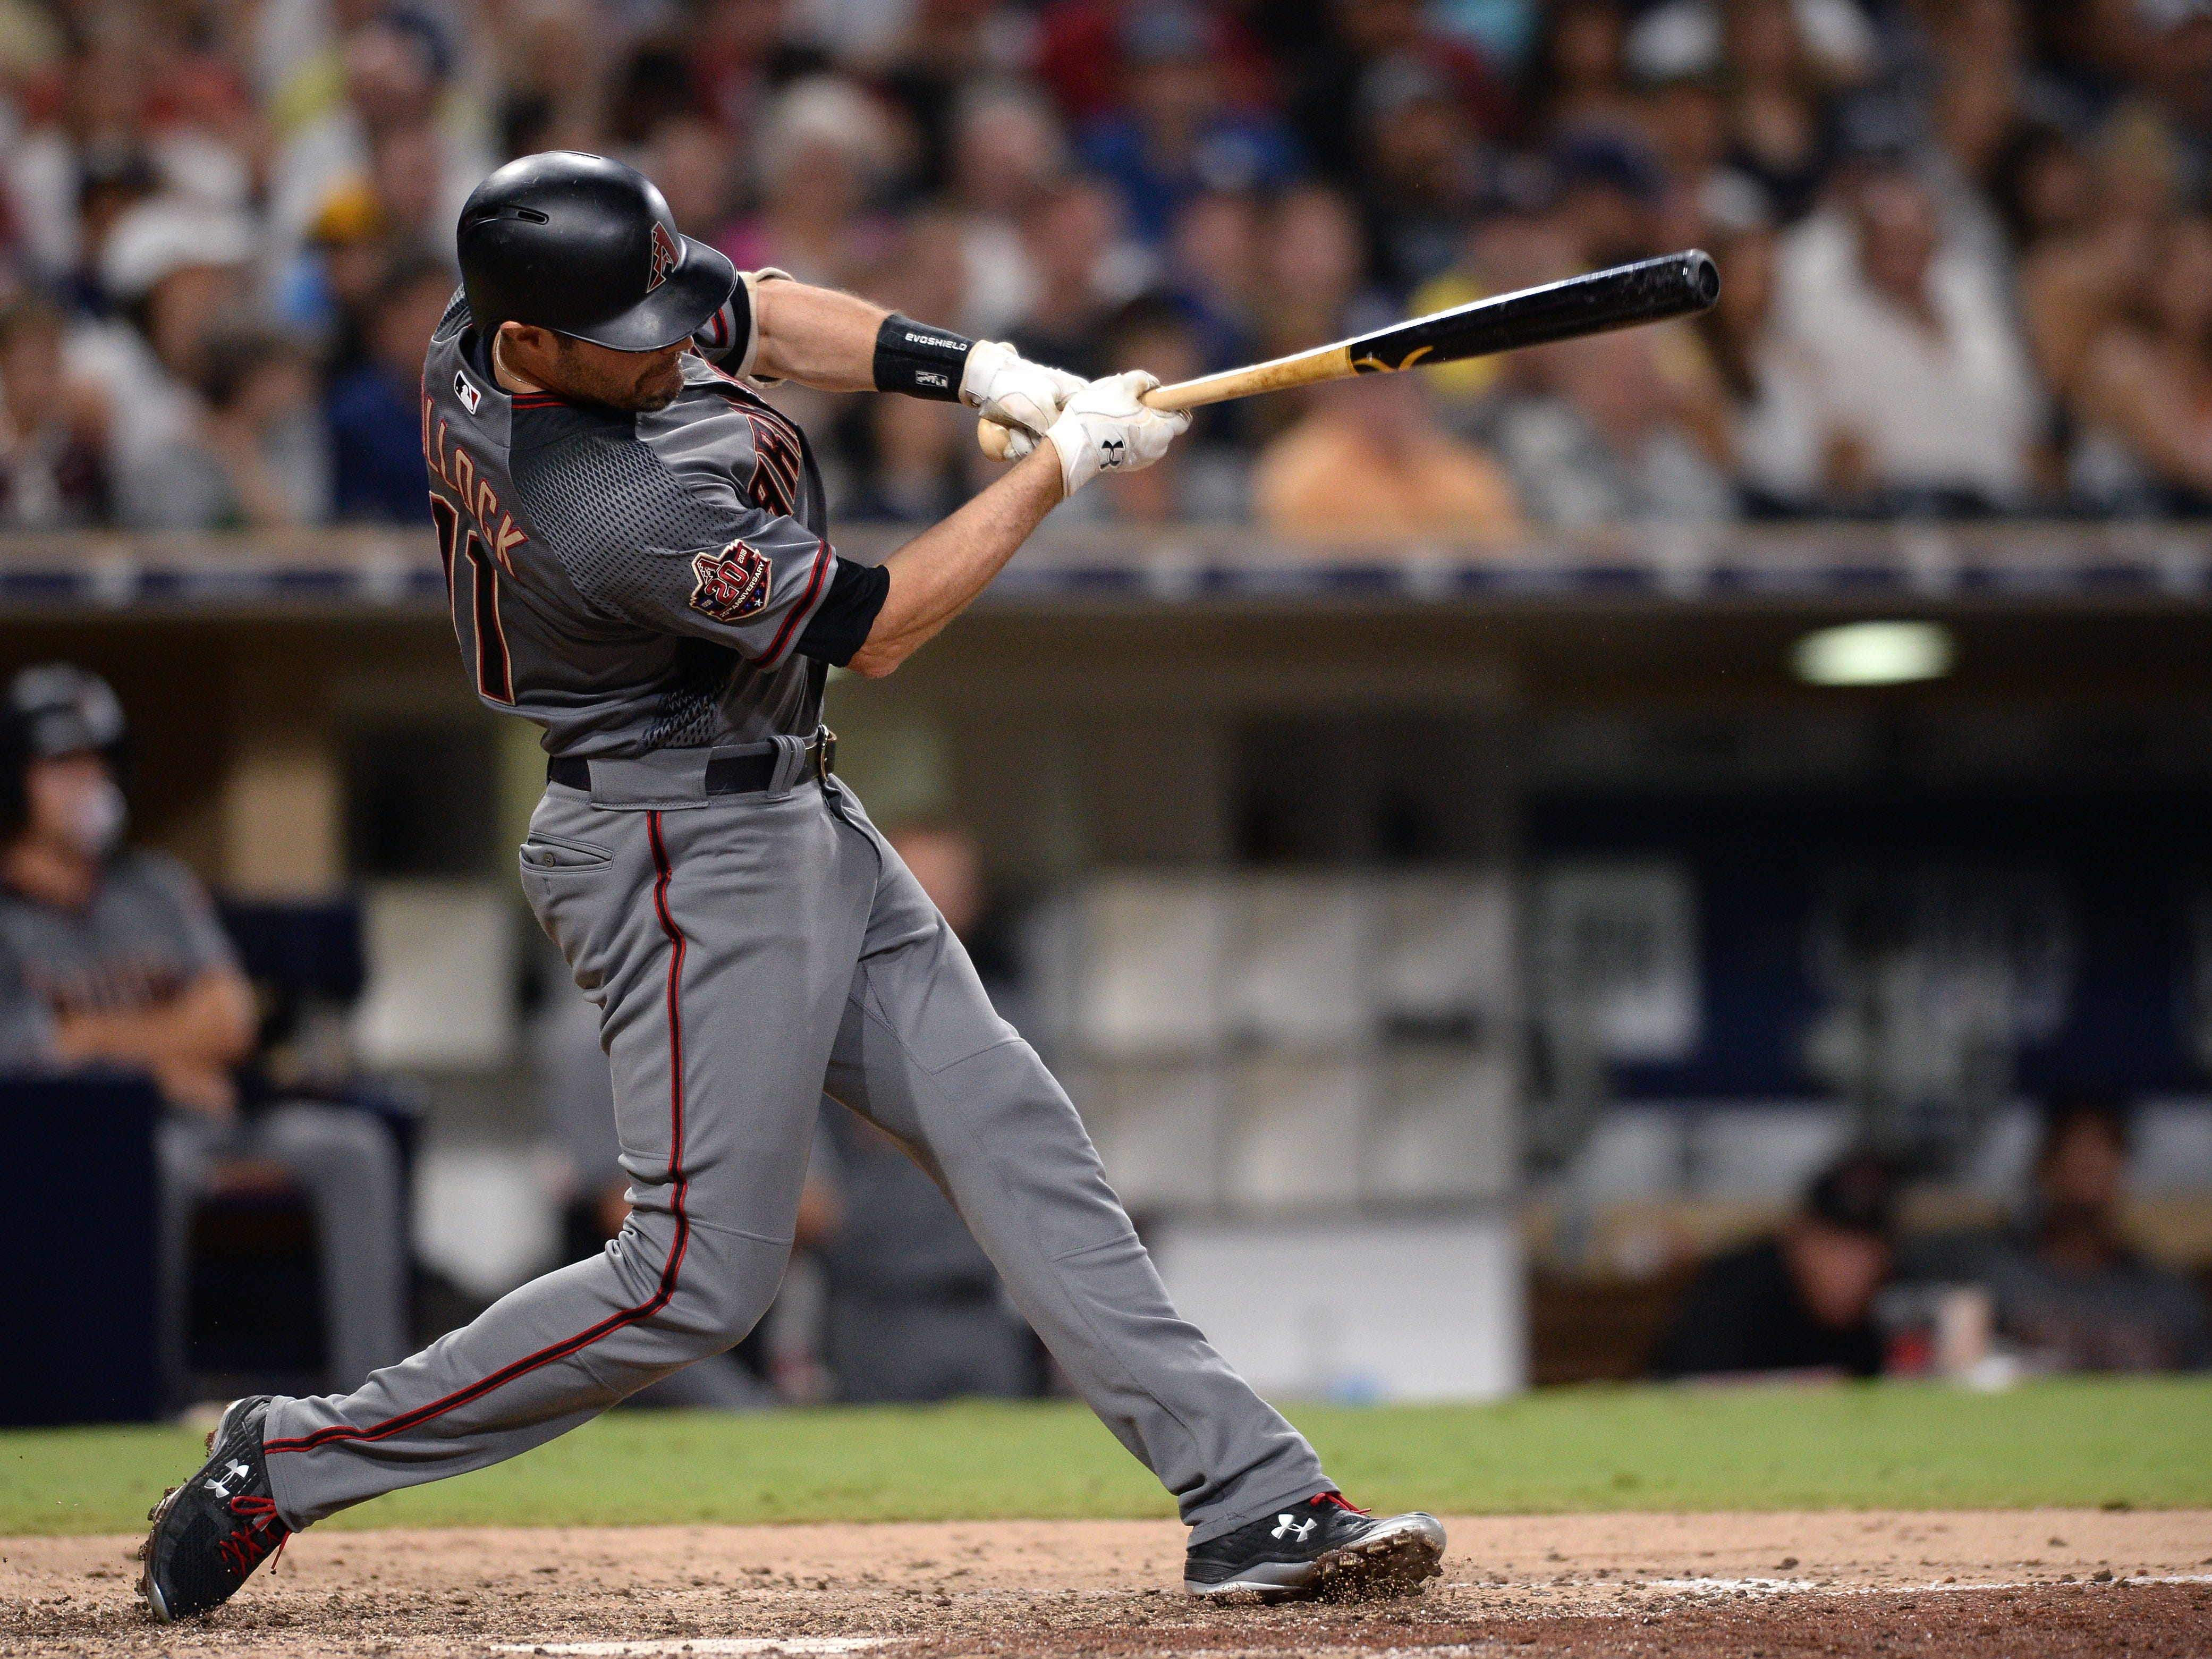 Aug 18, 2018: Arizona Diamondbacks center fielder A.J. Pollock hits a double during the seventh inning against the San Diego Padres at Petco Park.